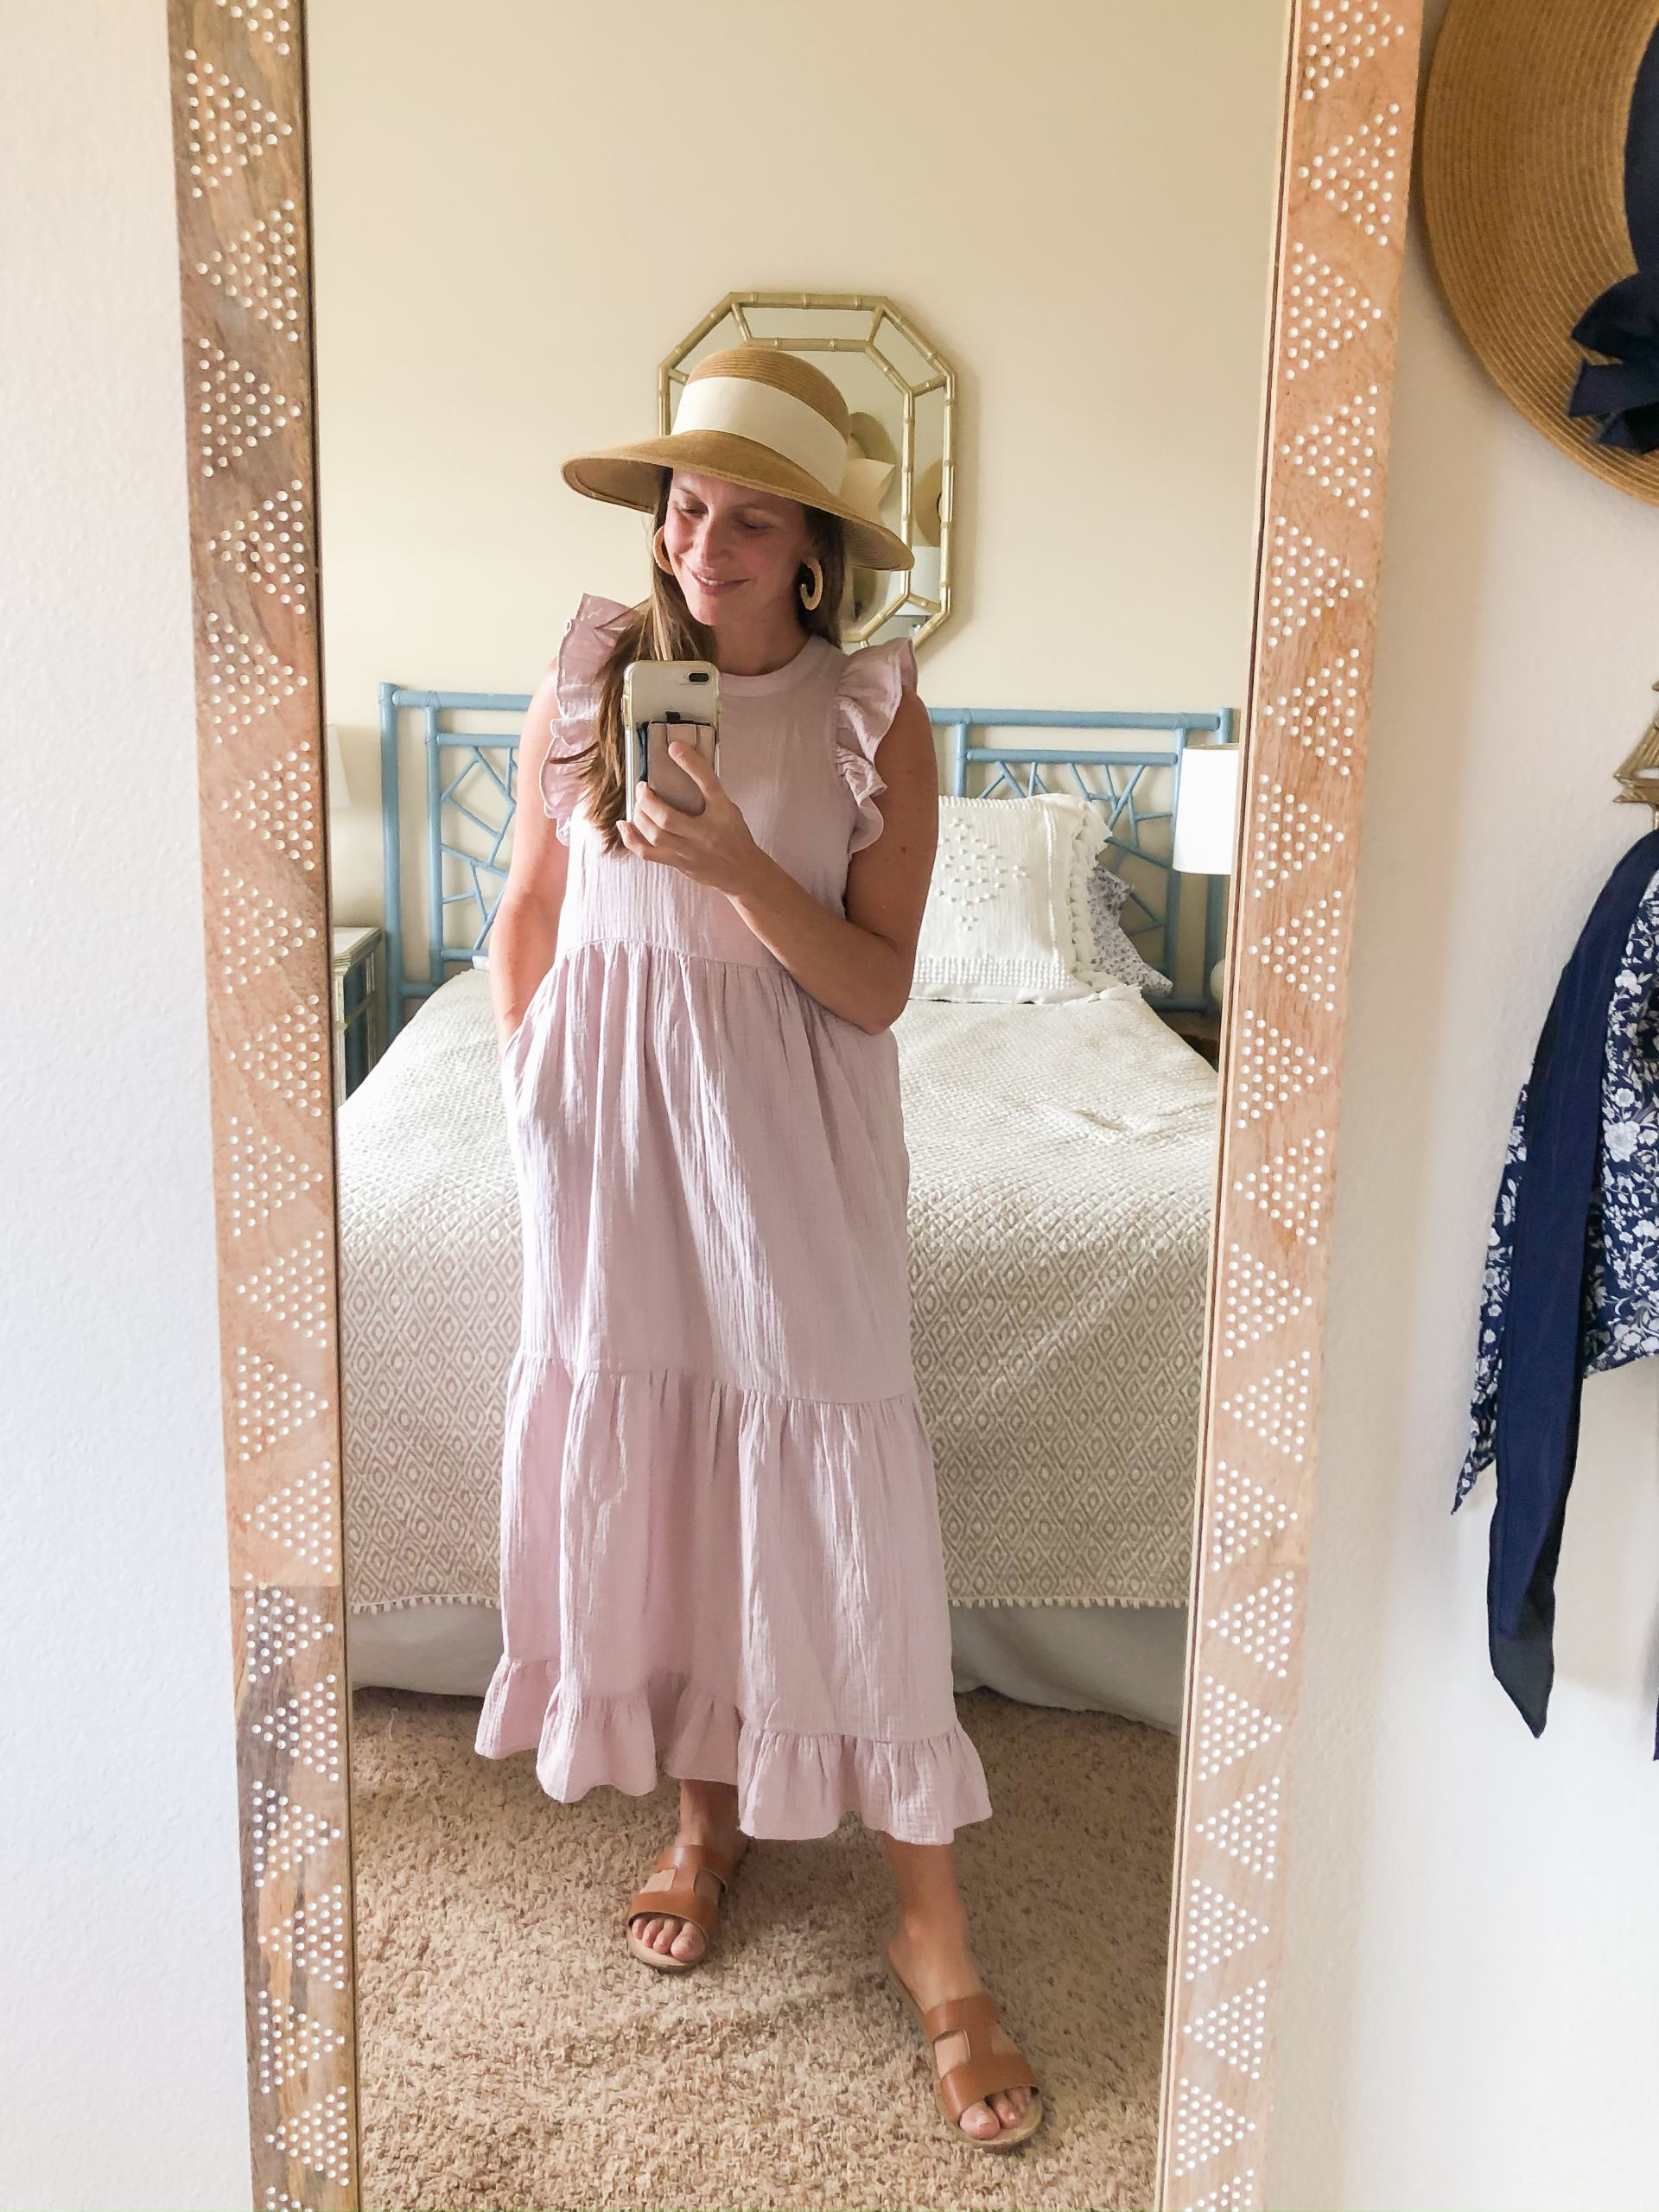 tiered midi dress - tiered maxi dress - lilac maxi dress - maxi dress with pockets - spring outfit ideas - packable sun hat - sun hat with bow